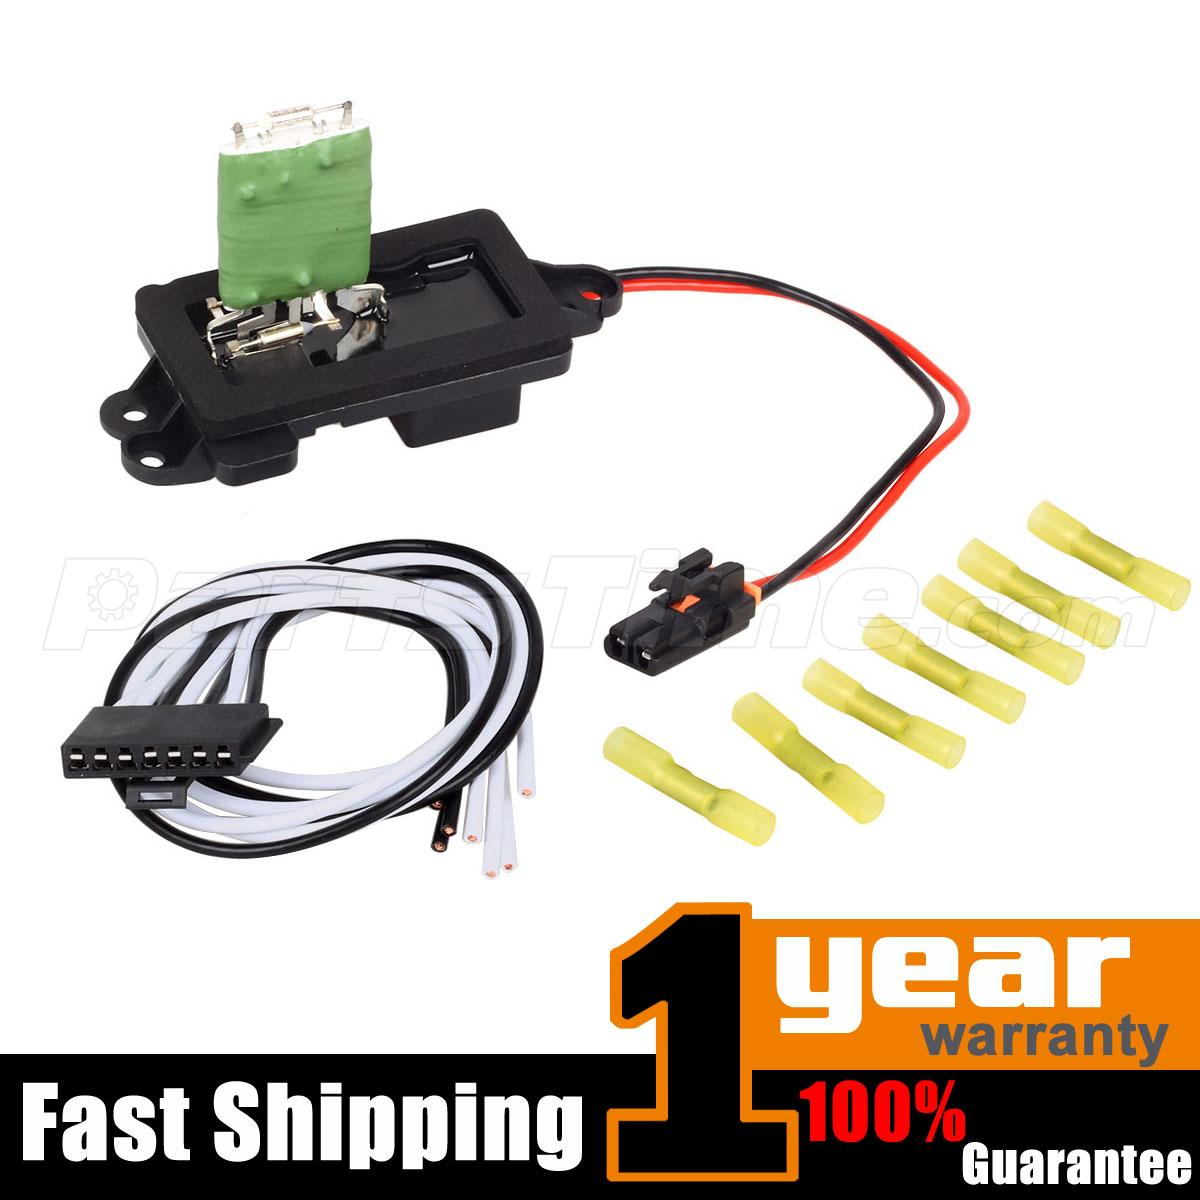 145392 1?rn=2668210 89019088 heater blower motor resistor for cadillac chevy gmc w 7-wire blower motor resistor harness at bayanpartner.co